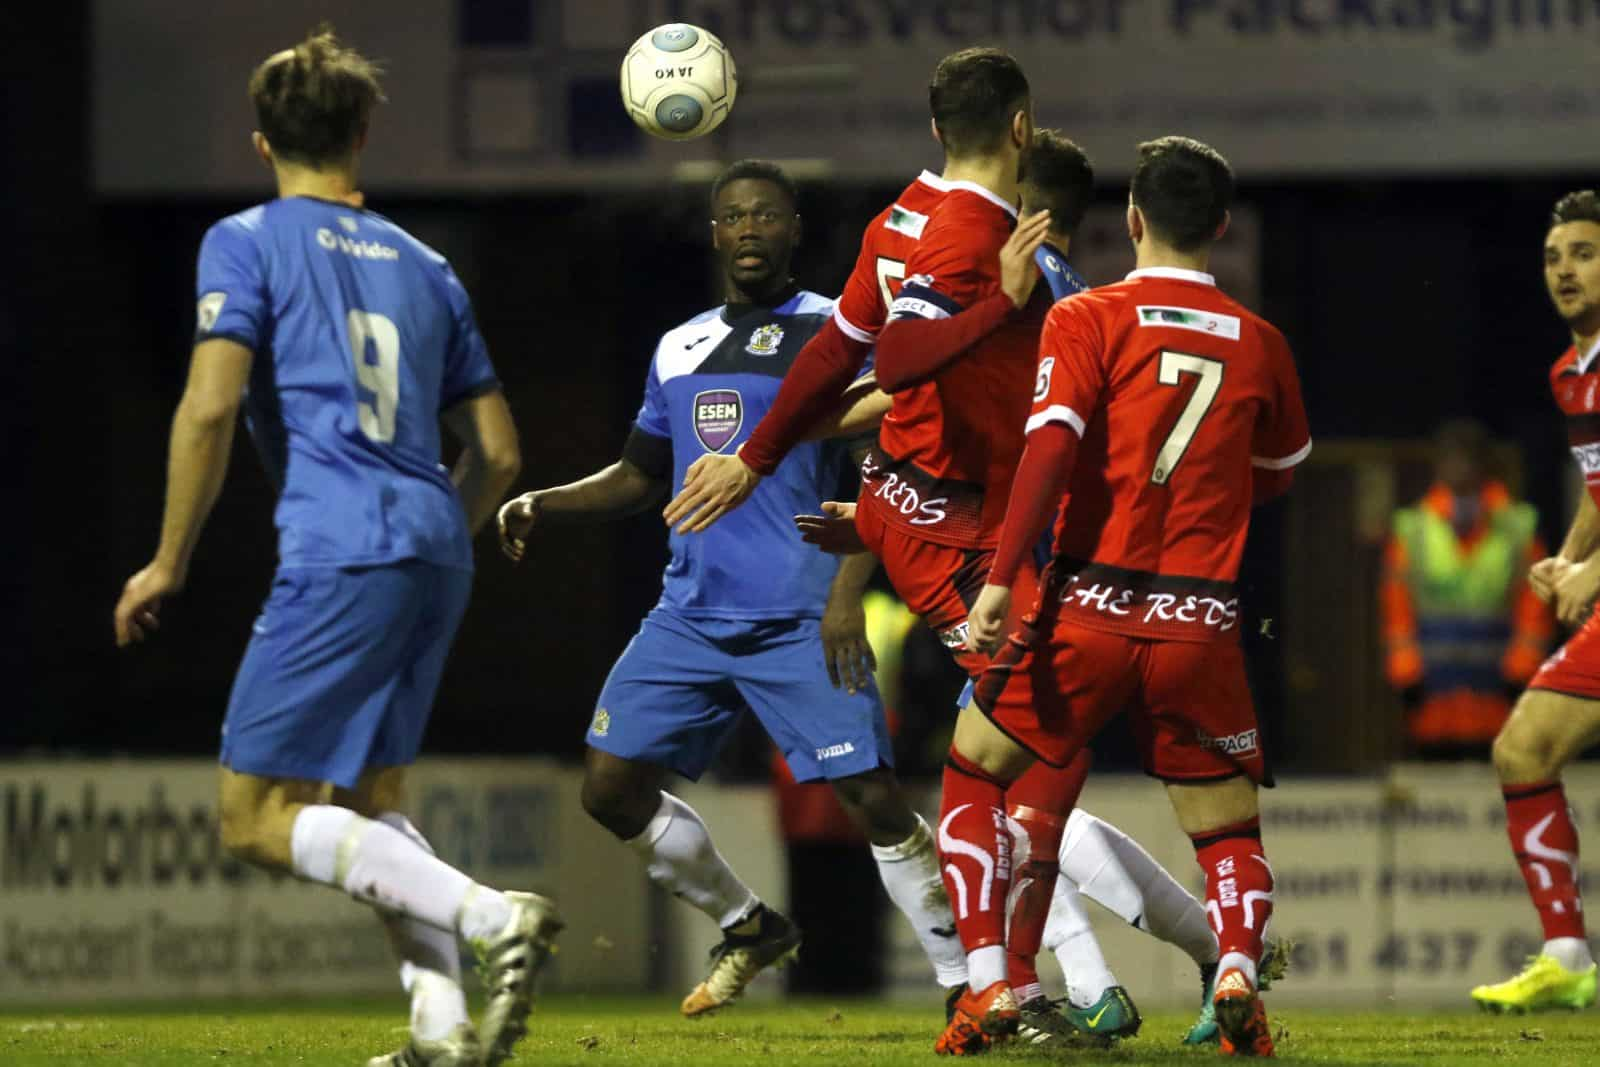 Darren Stephenson, Stockport County 1-0 Alfreton Town